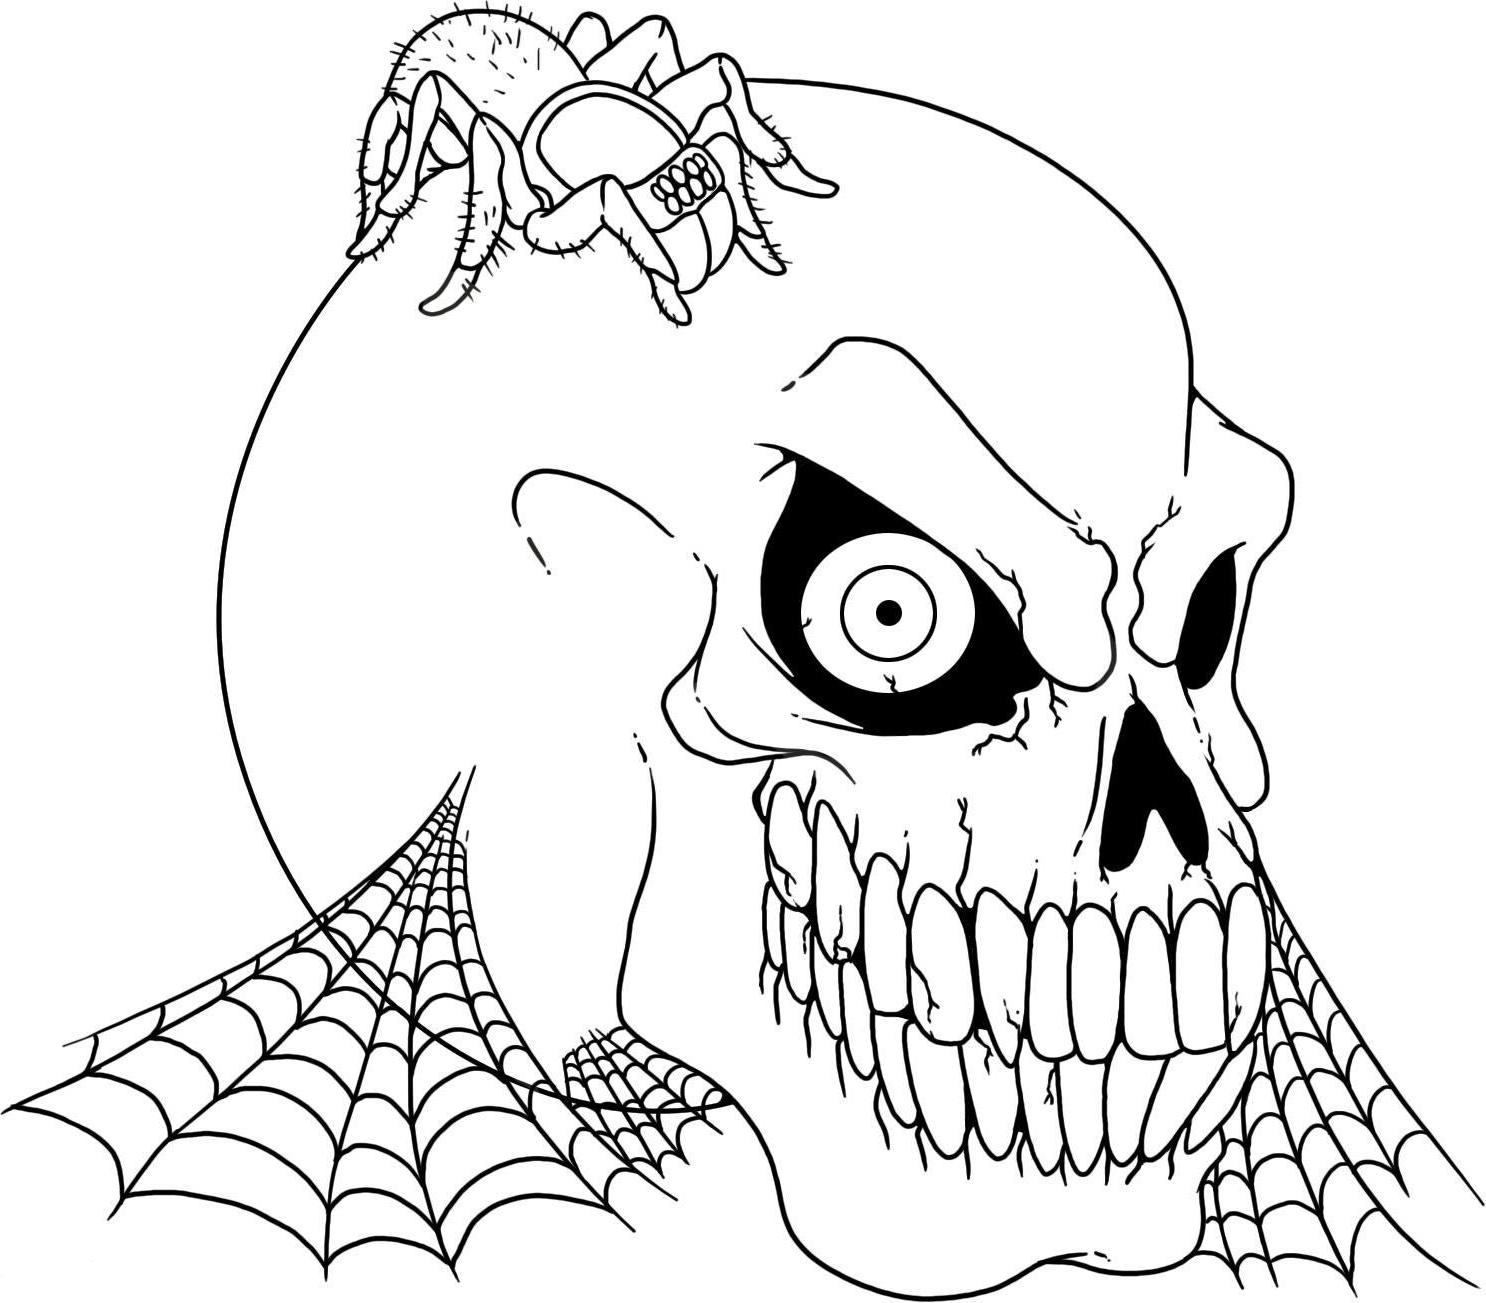 5 Images of Scary Coloring Pages Printable